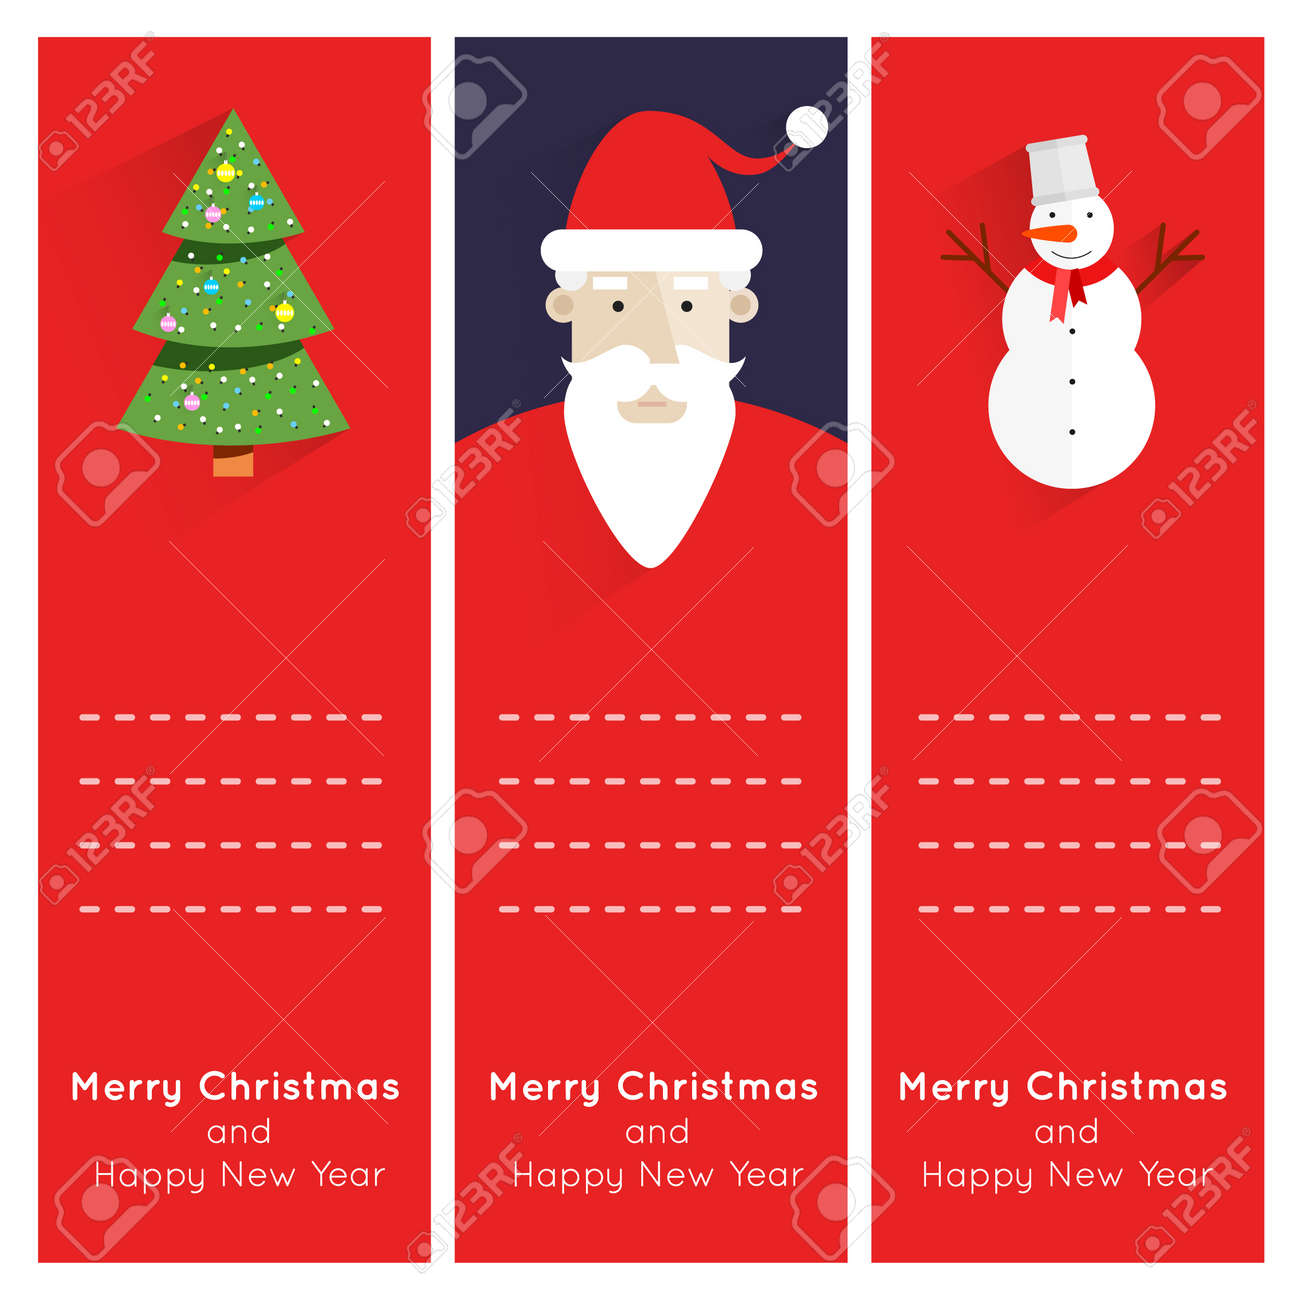 Merry christmas and happy new year greeting card templates poster merry christmas and happy new year greeting card templates poster banner card m4hsunfo Gallery